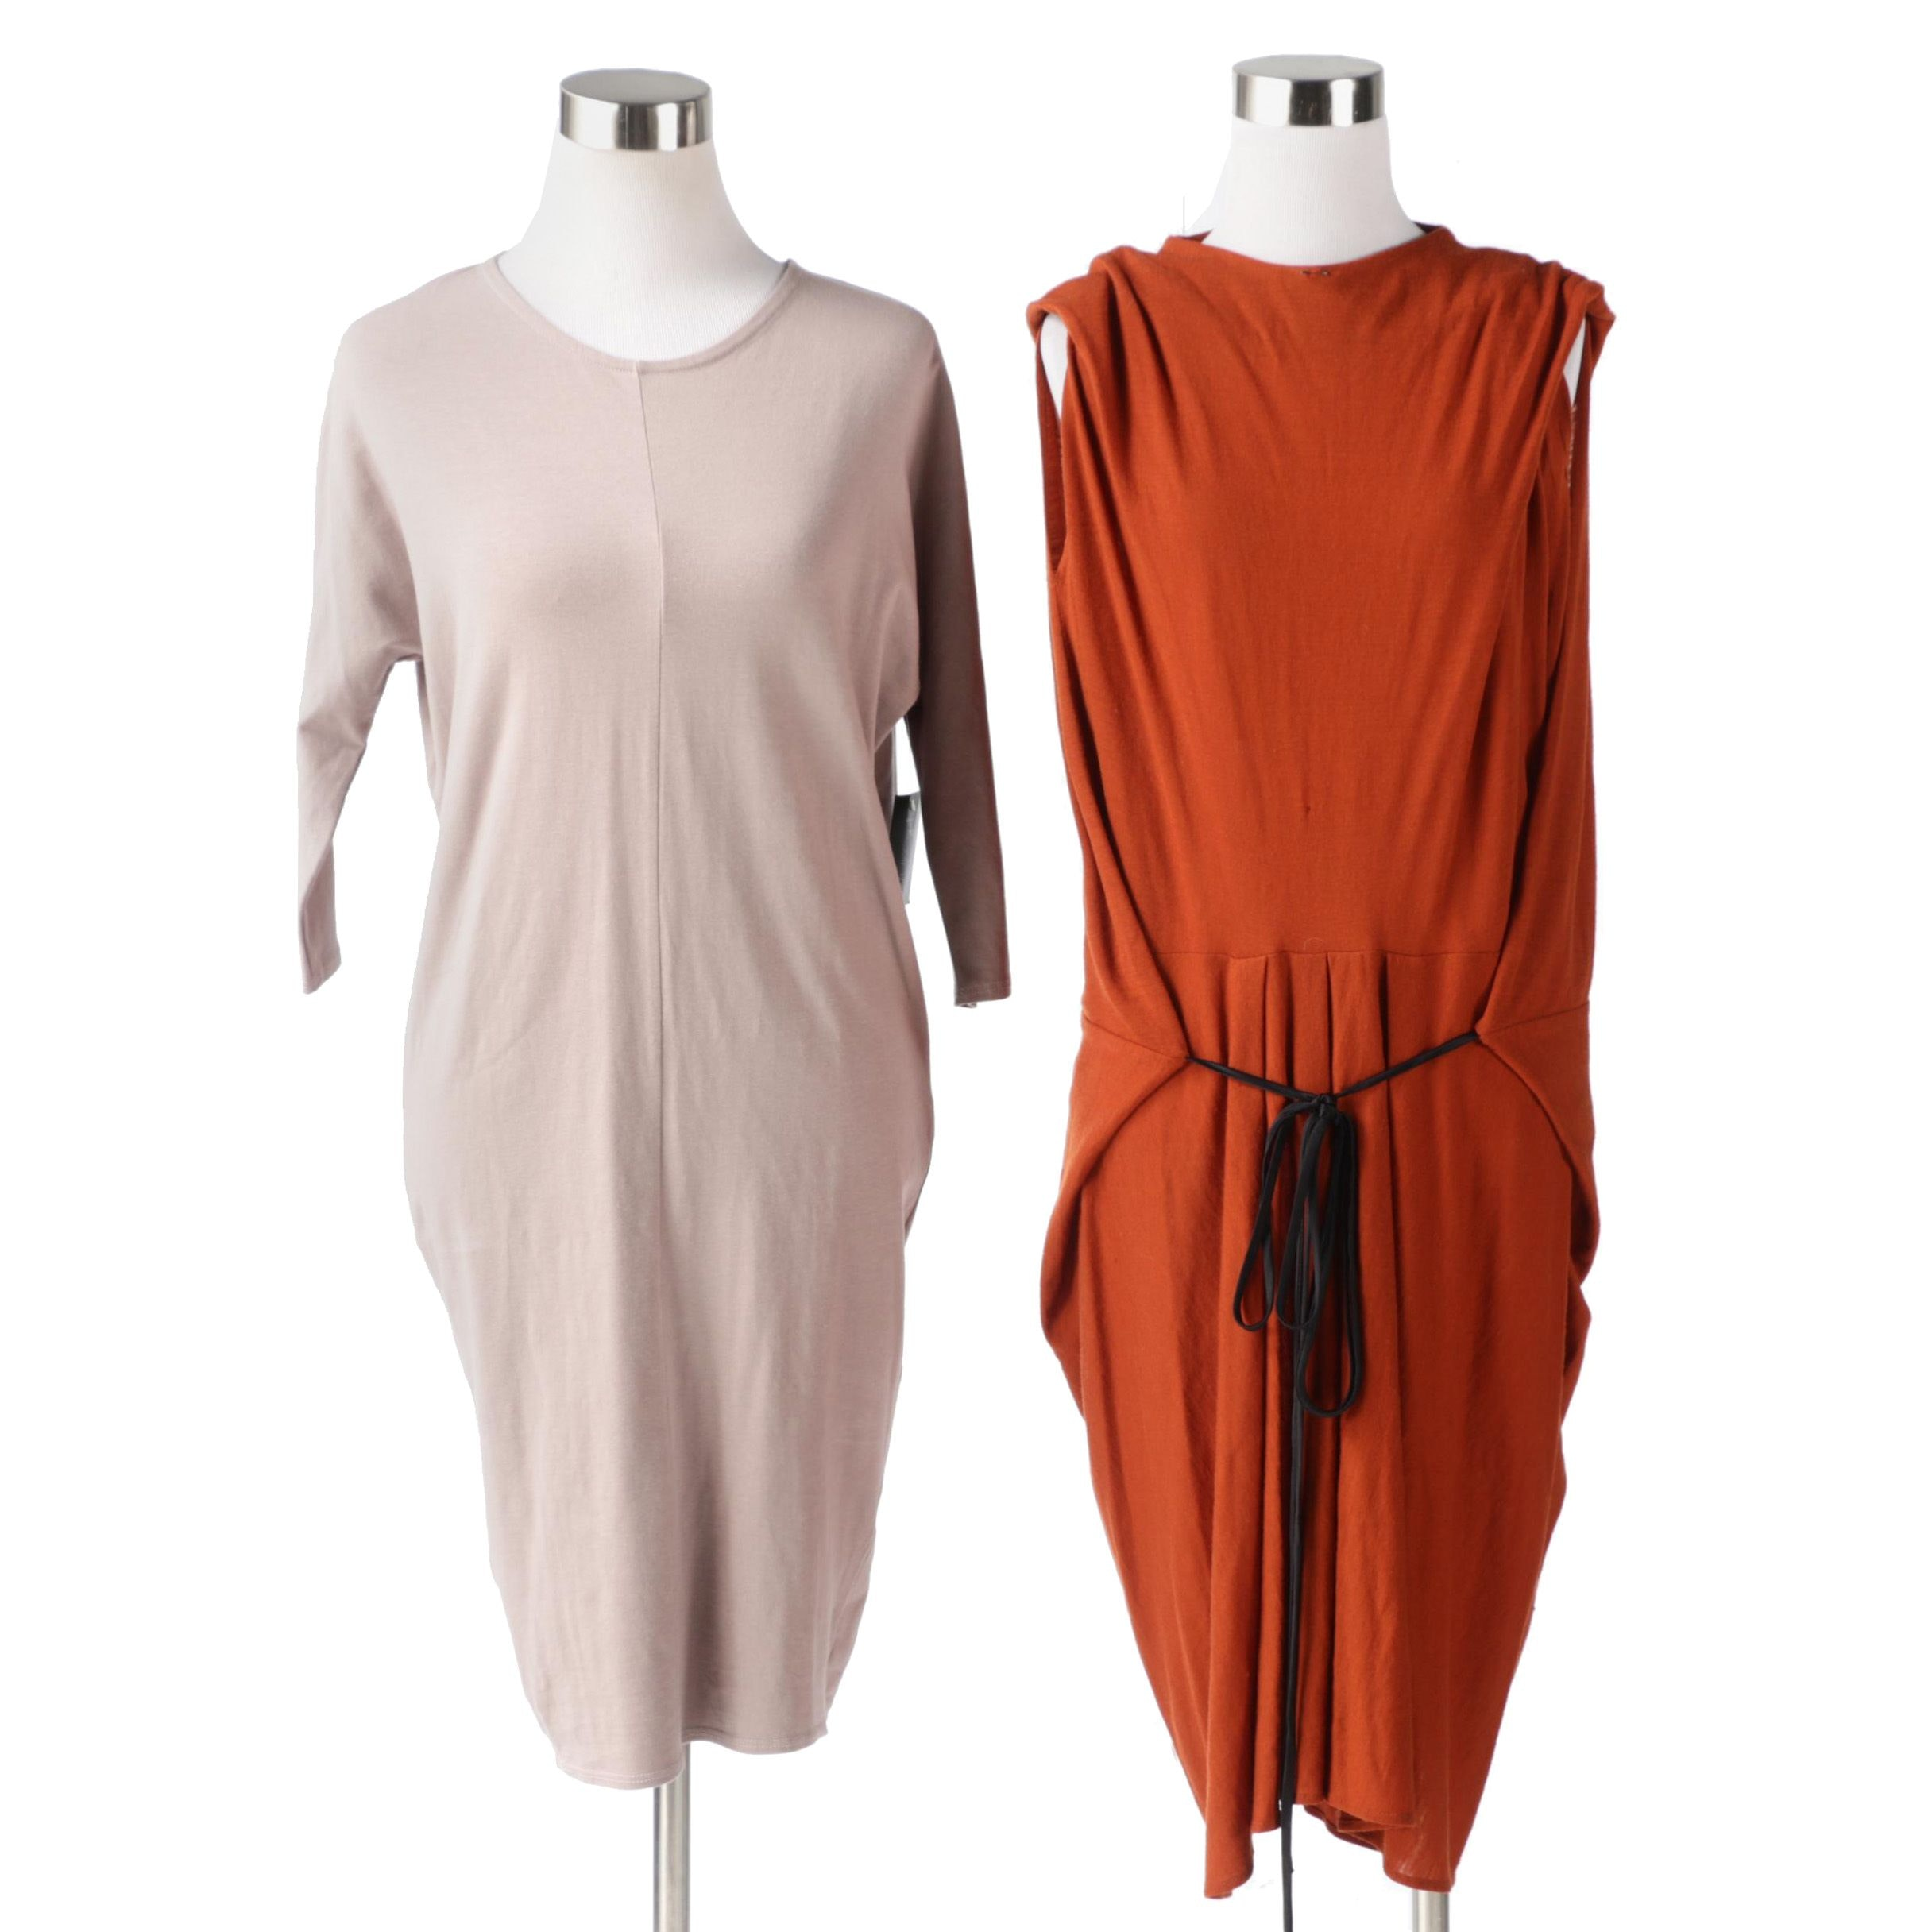 Wuko Gals and Wayne Casual Lightweight Dresses